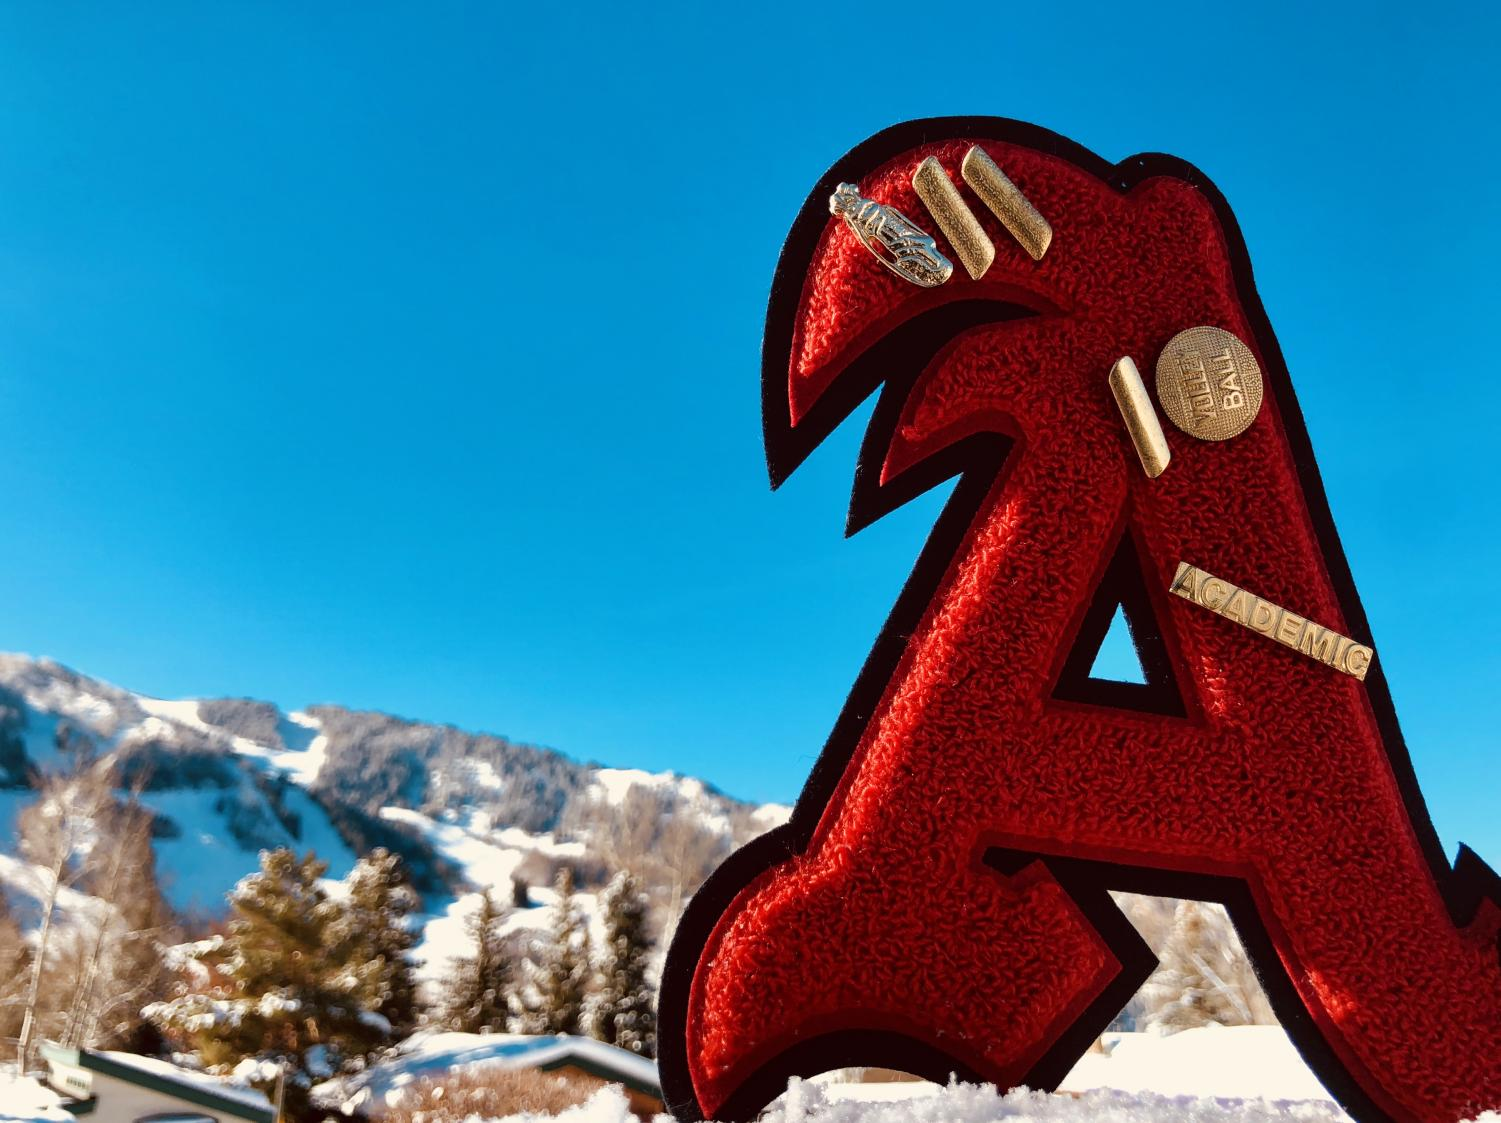 Zoe Guthrie's varsity letter from AHS with Aspen mountain in the background.